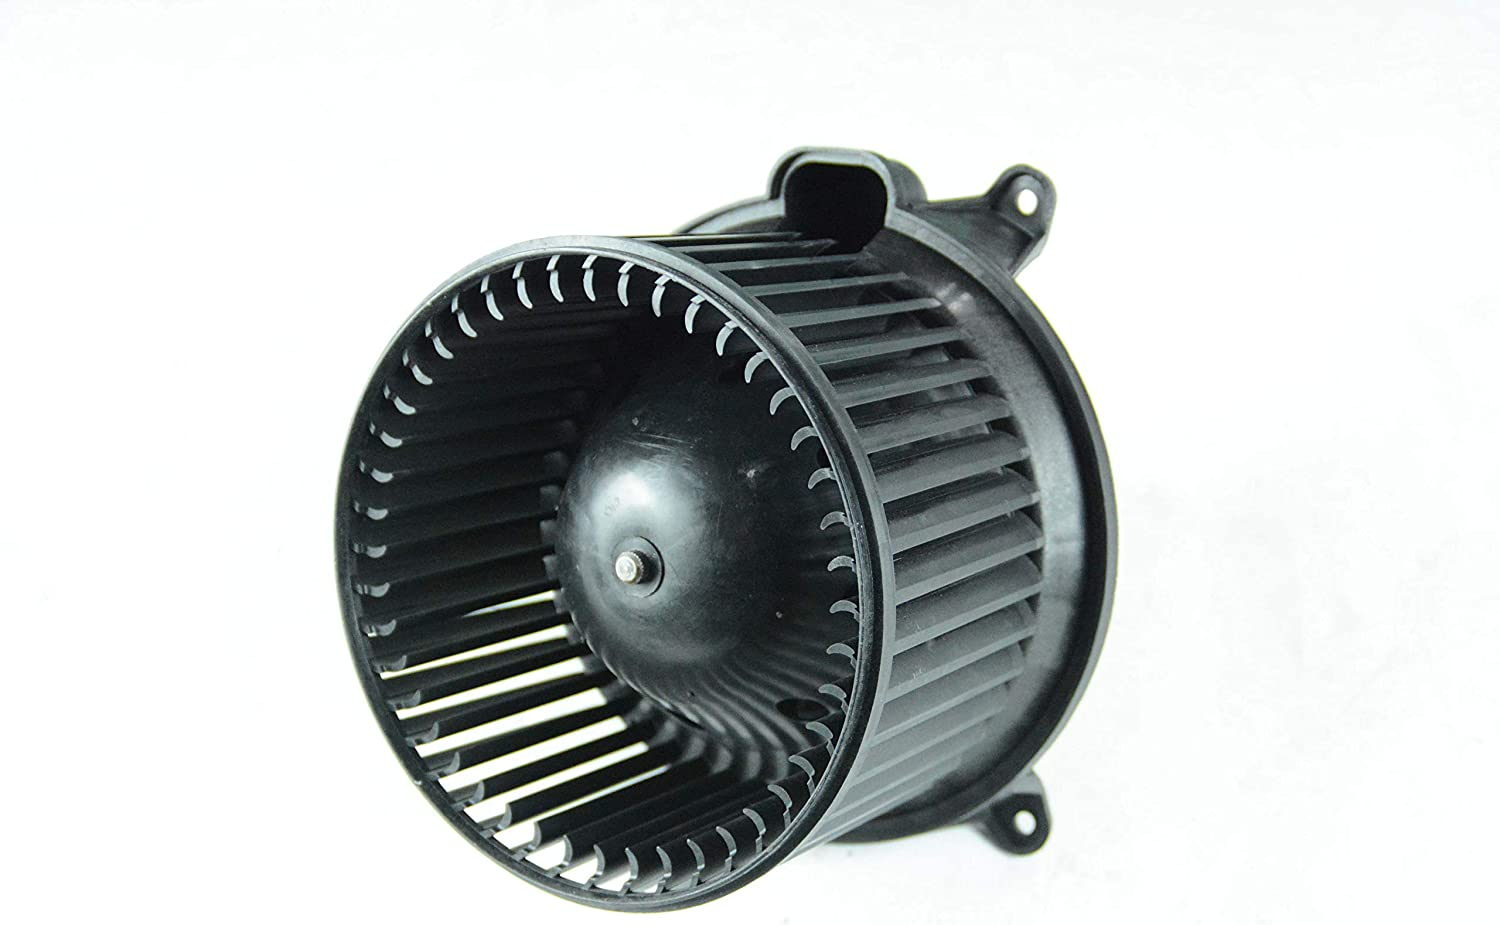 700139 Heater Blower Motor /& Fan Cage for 04-08 Ford F-150 03-06 Ford Expedition